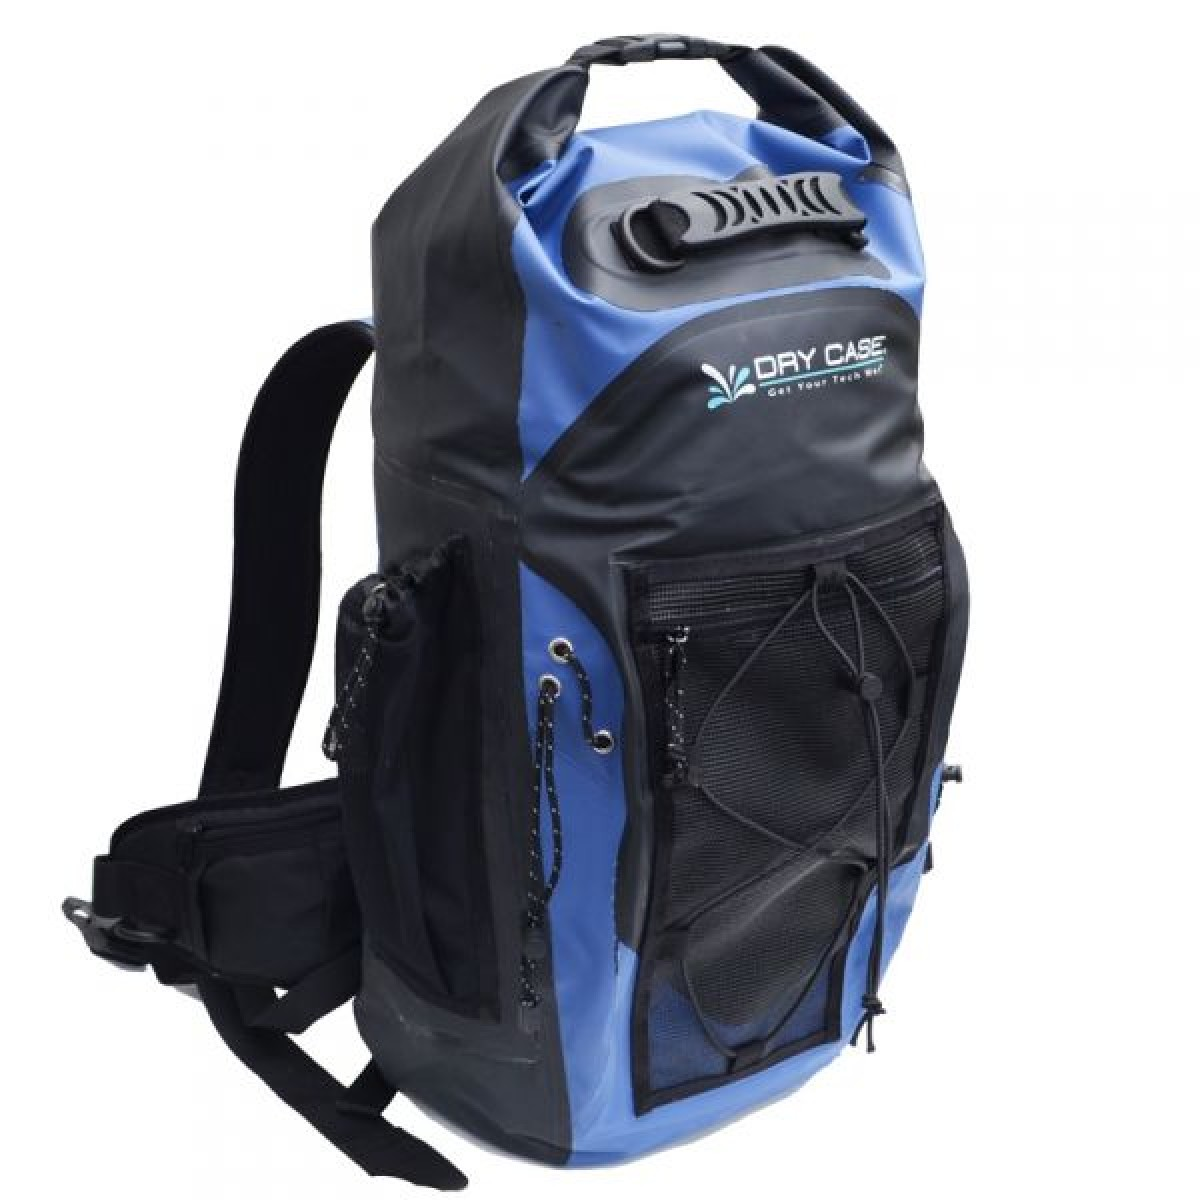 Drycase Waterproof Backpack q5vOhoU3